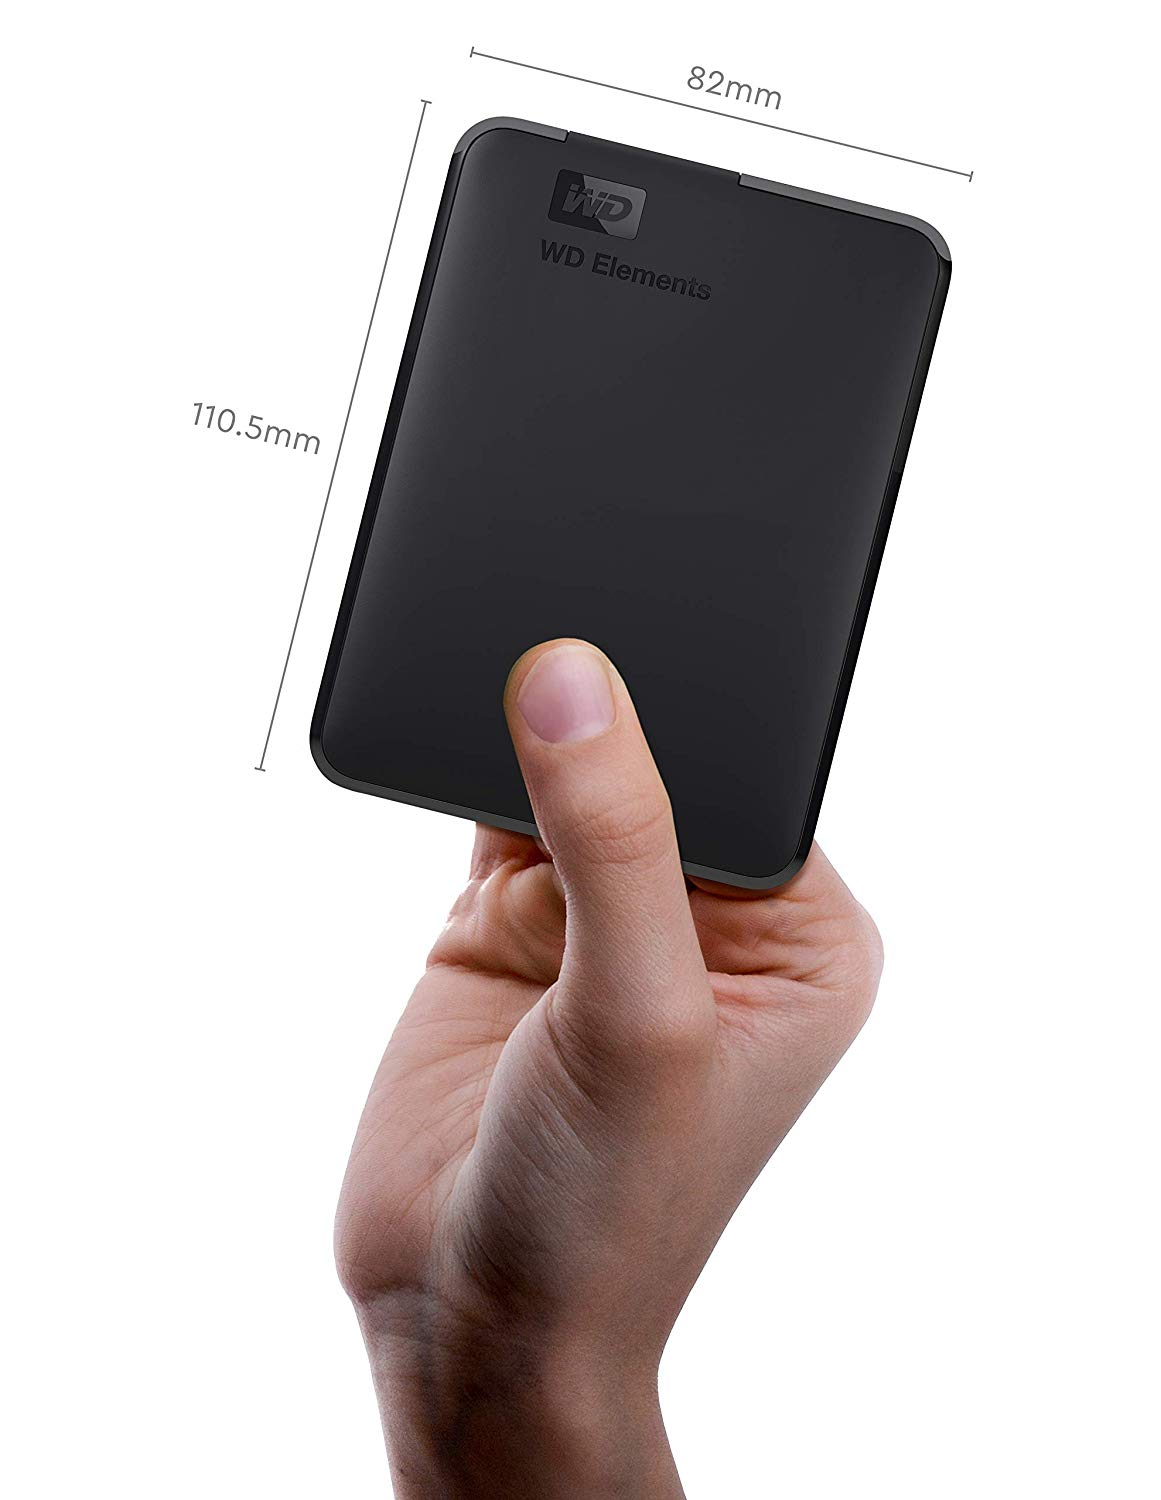 19% off WD 5TB Elements Portable External Hard Drive, USB 3.0